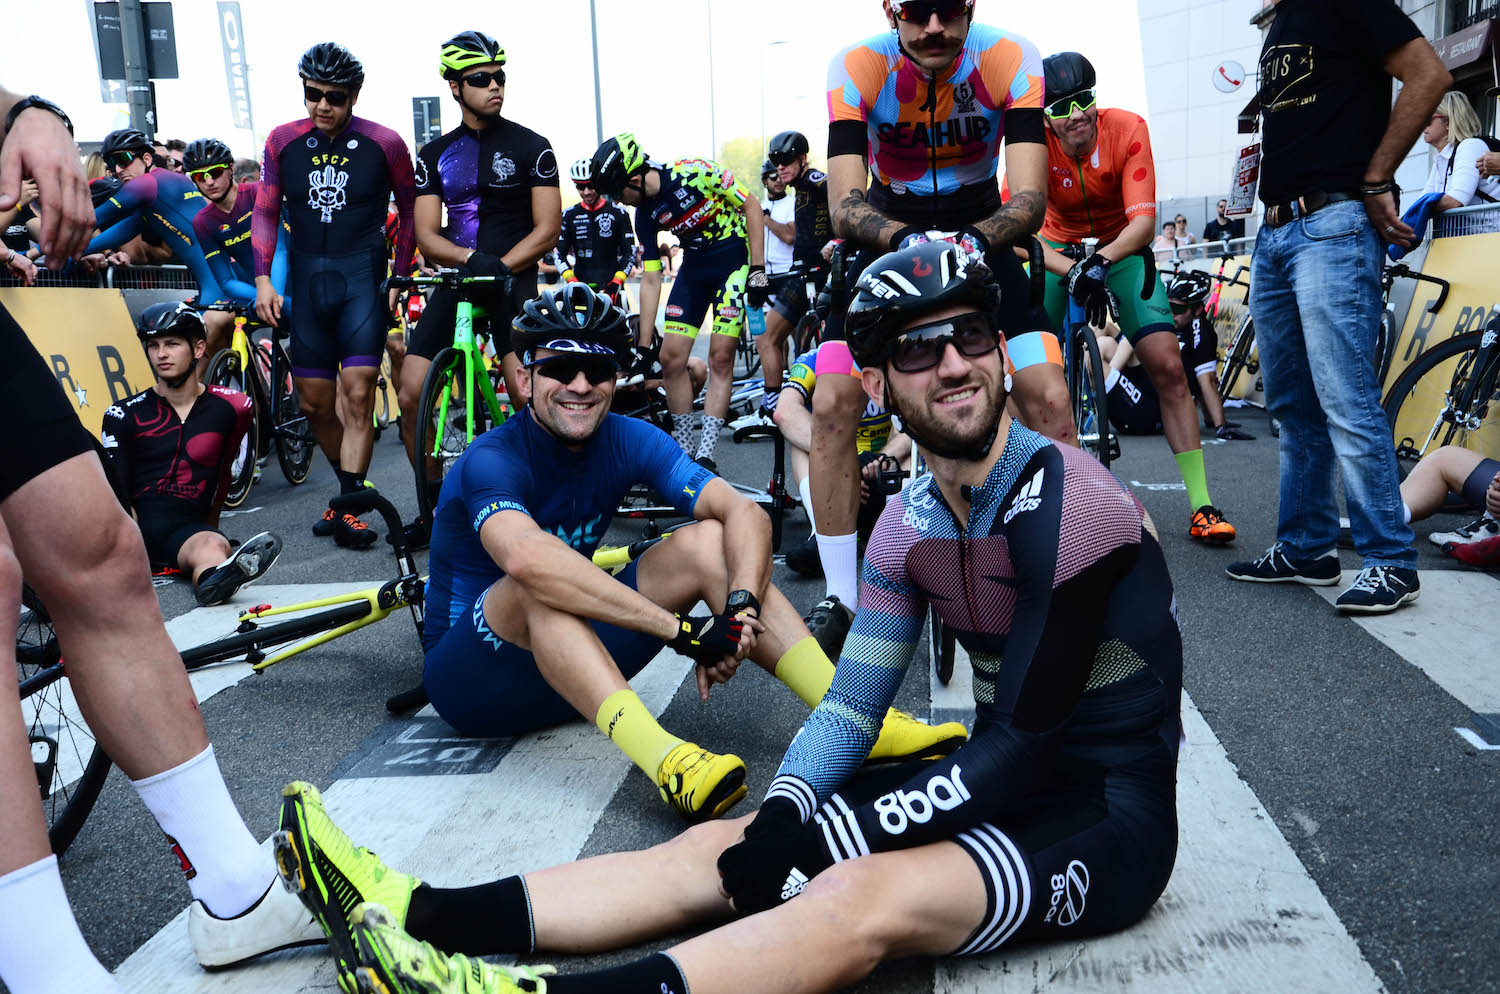 8bar-team-red-hook-crit-milan-2017-dsc_6405